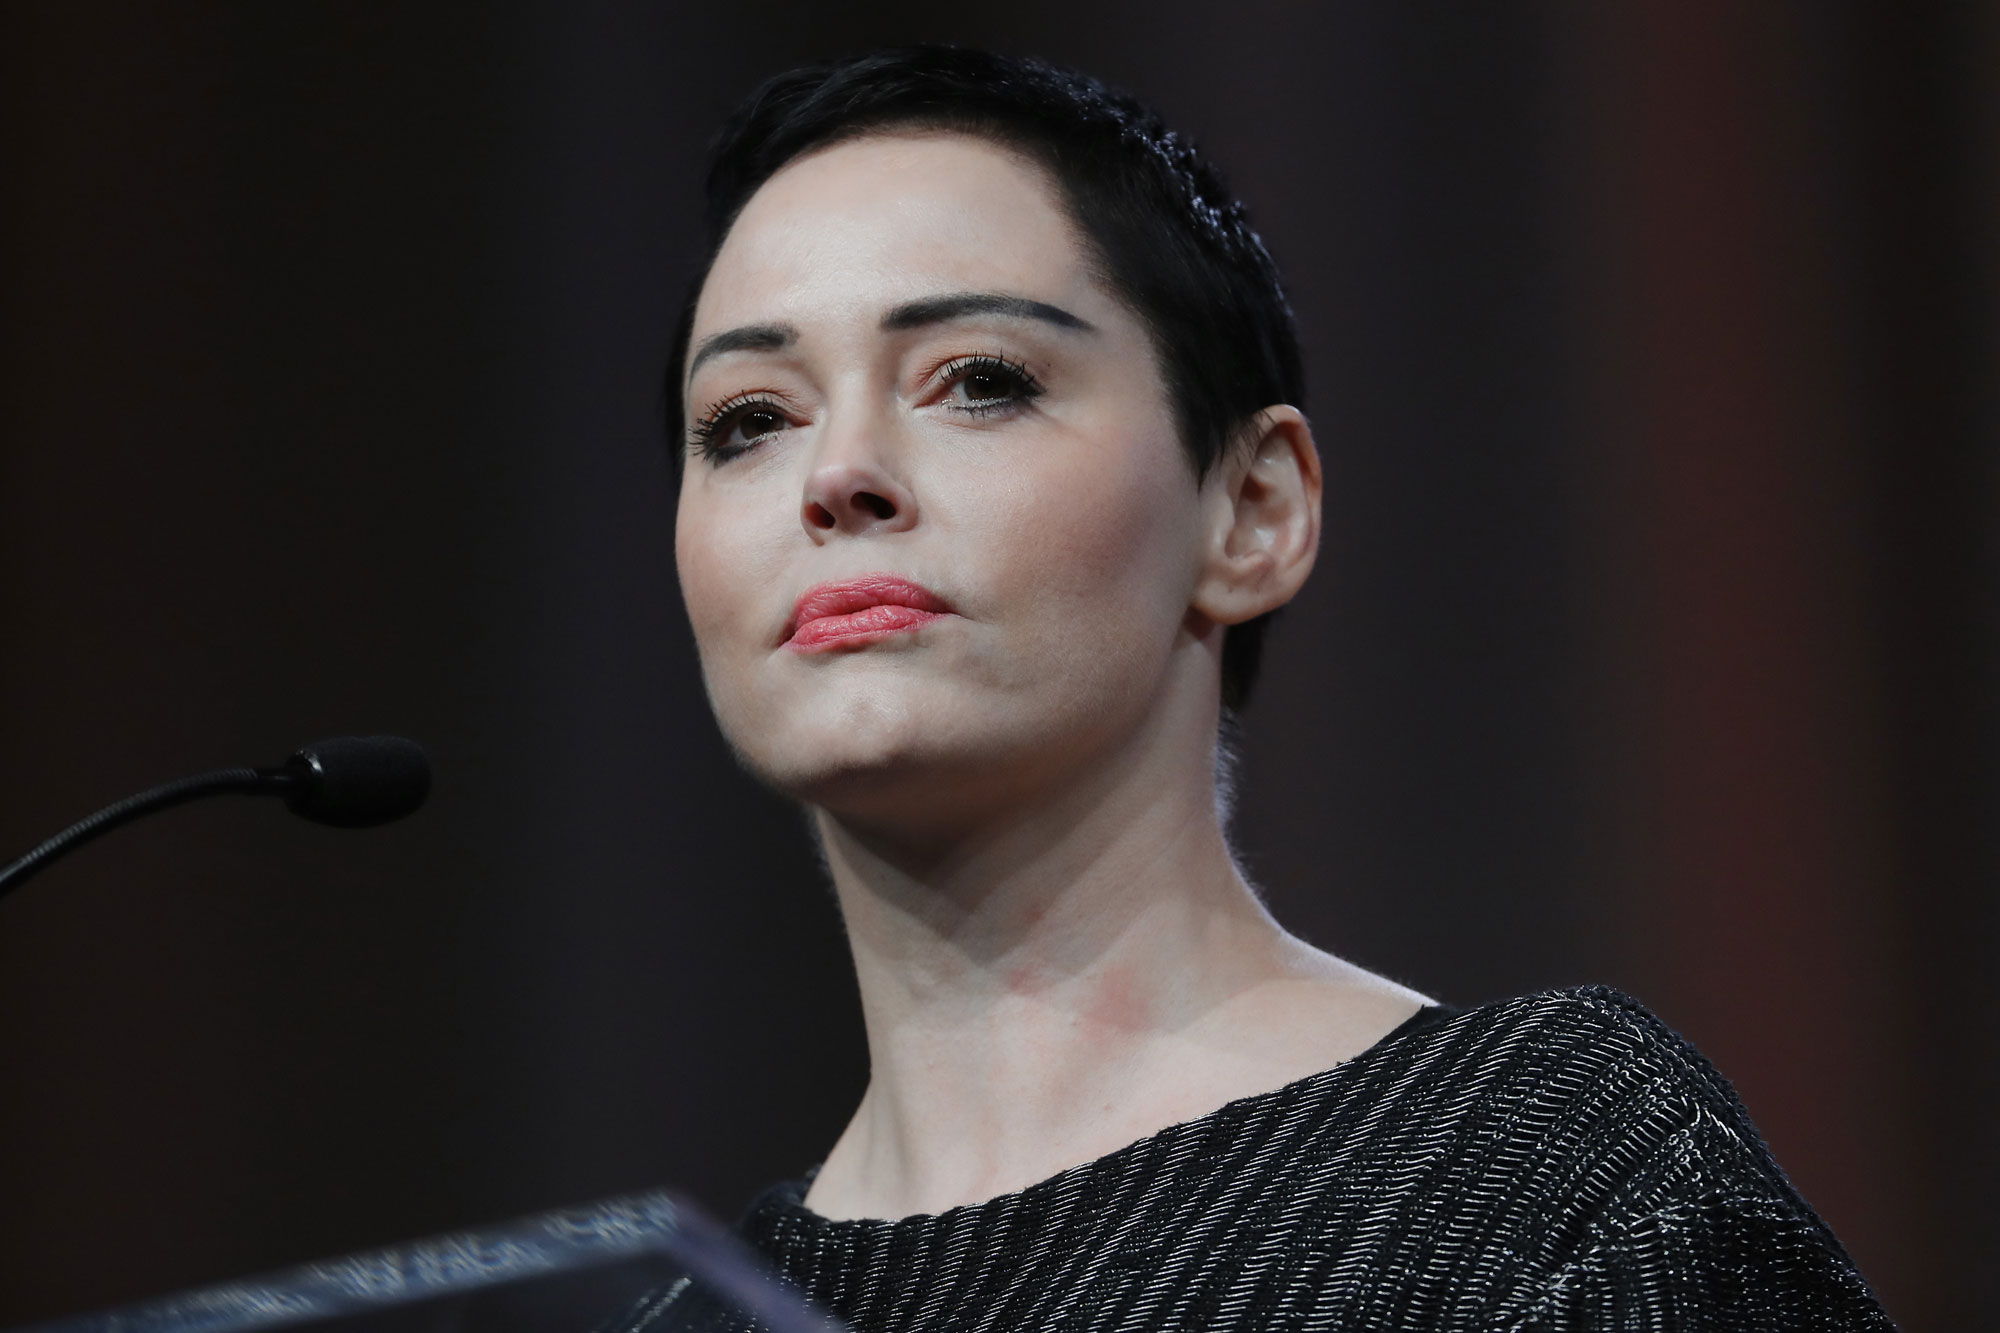 Rose McGowan to Plead No Contest to Drug Possession Charge After Judge Refuses to Dismiss Case